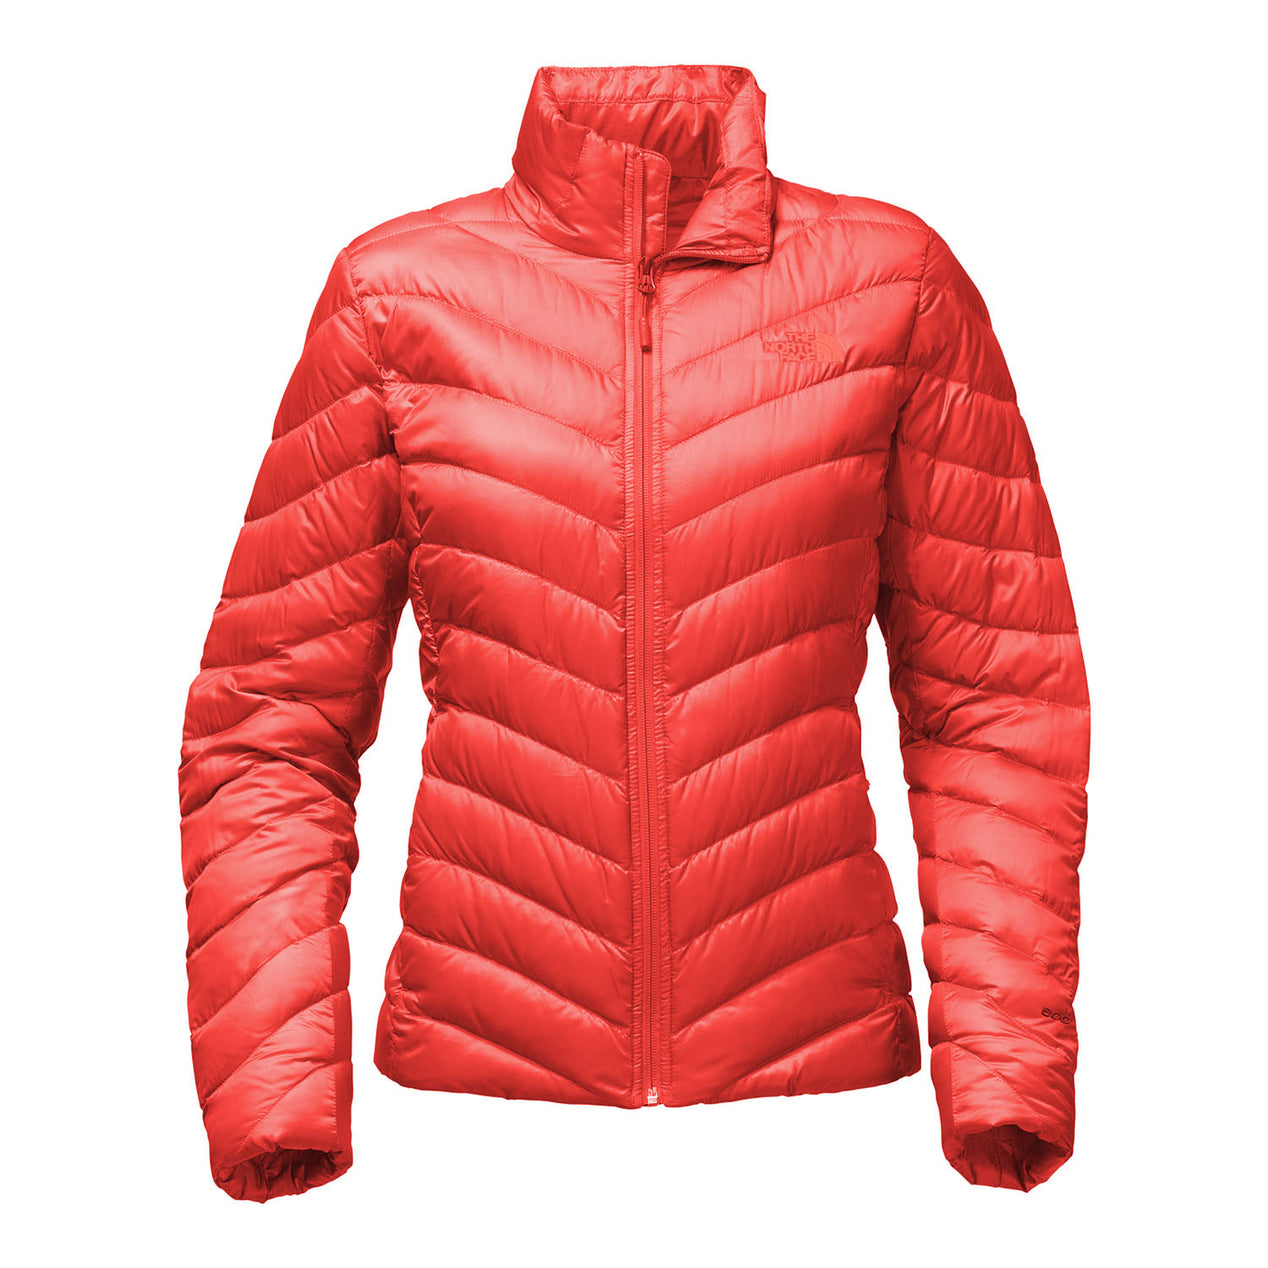 2713bc0b30 The North Face Women s Trevail Jacket Past Season